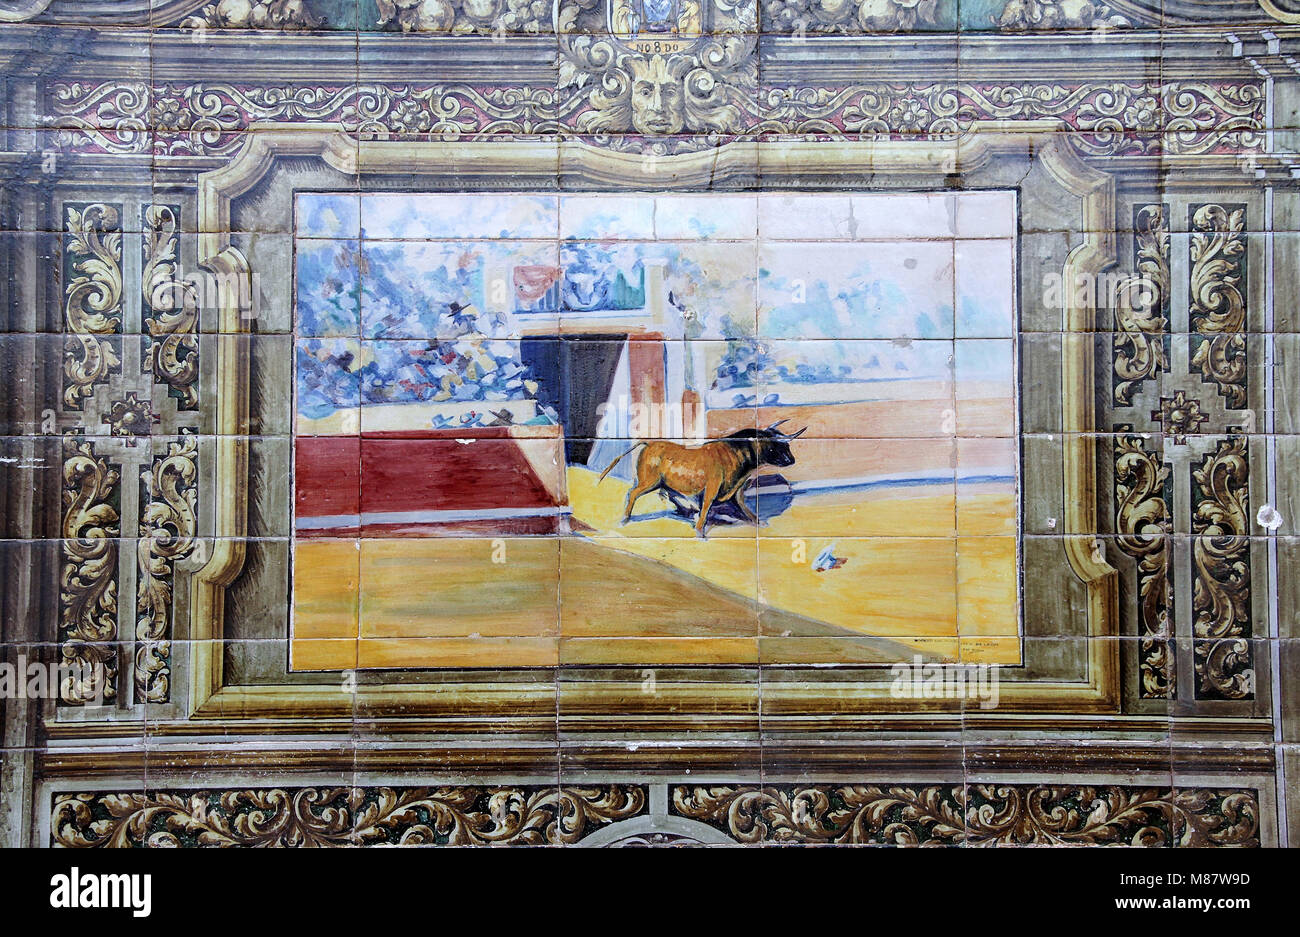 Bullfight artwork at the Alcoves of the Provinces in Plaza de Espana in Seville - Stock Image